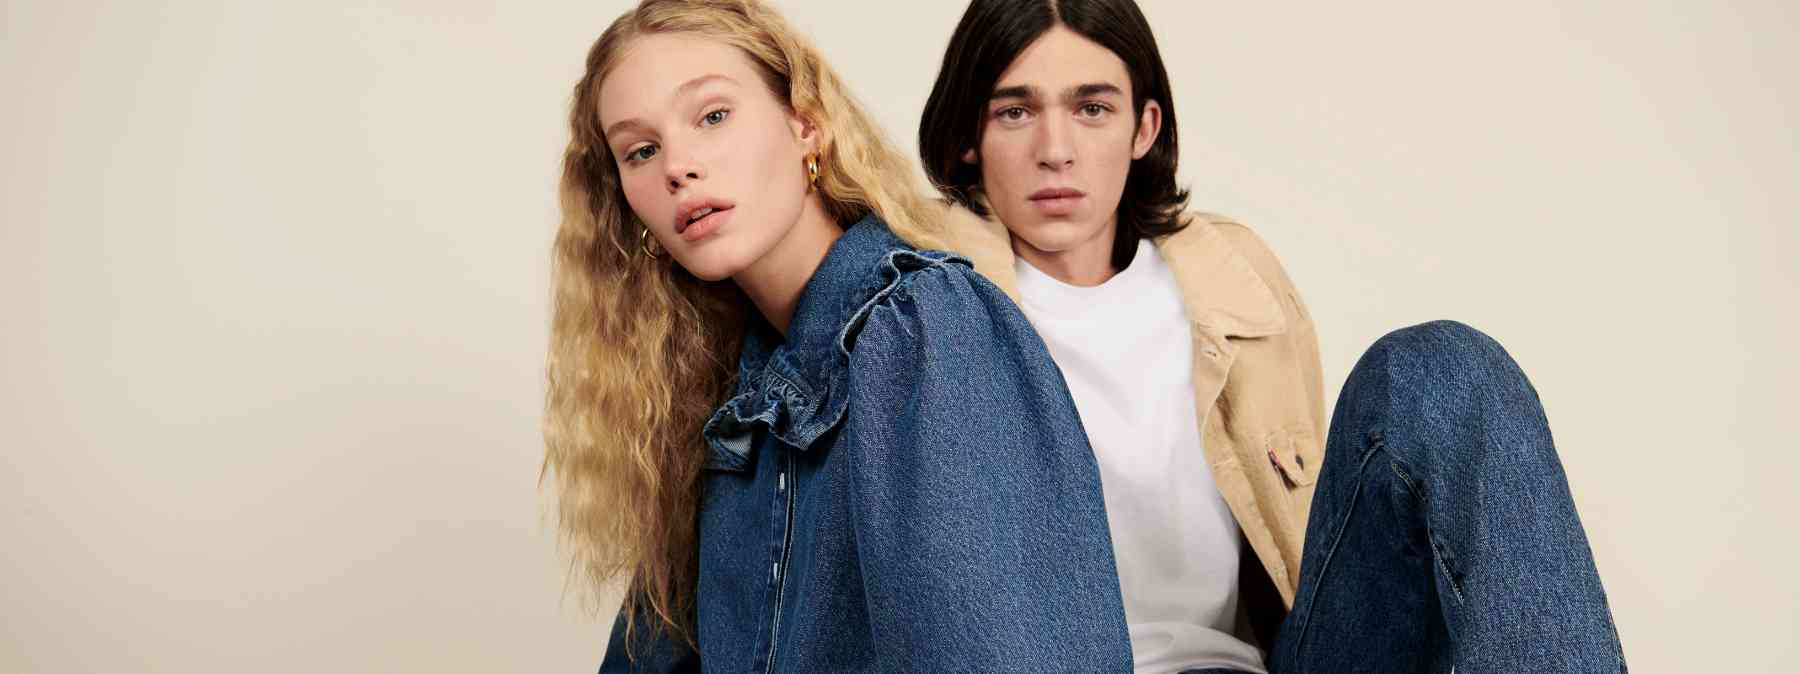 Two people linking arms in Levi denim jackets